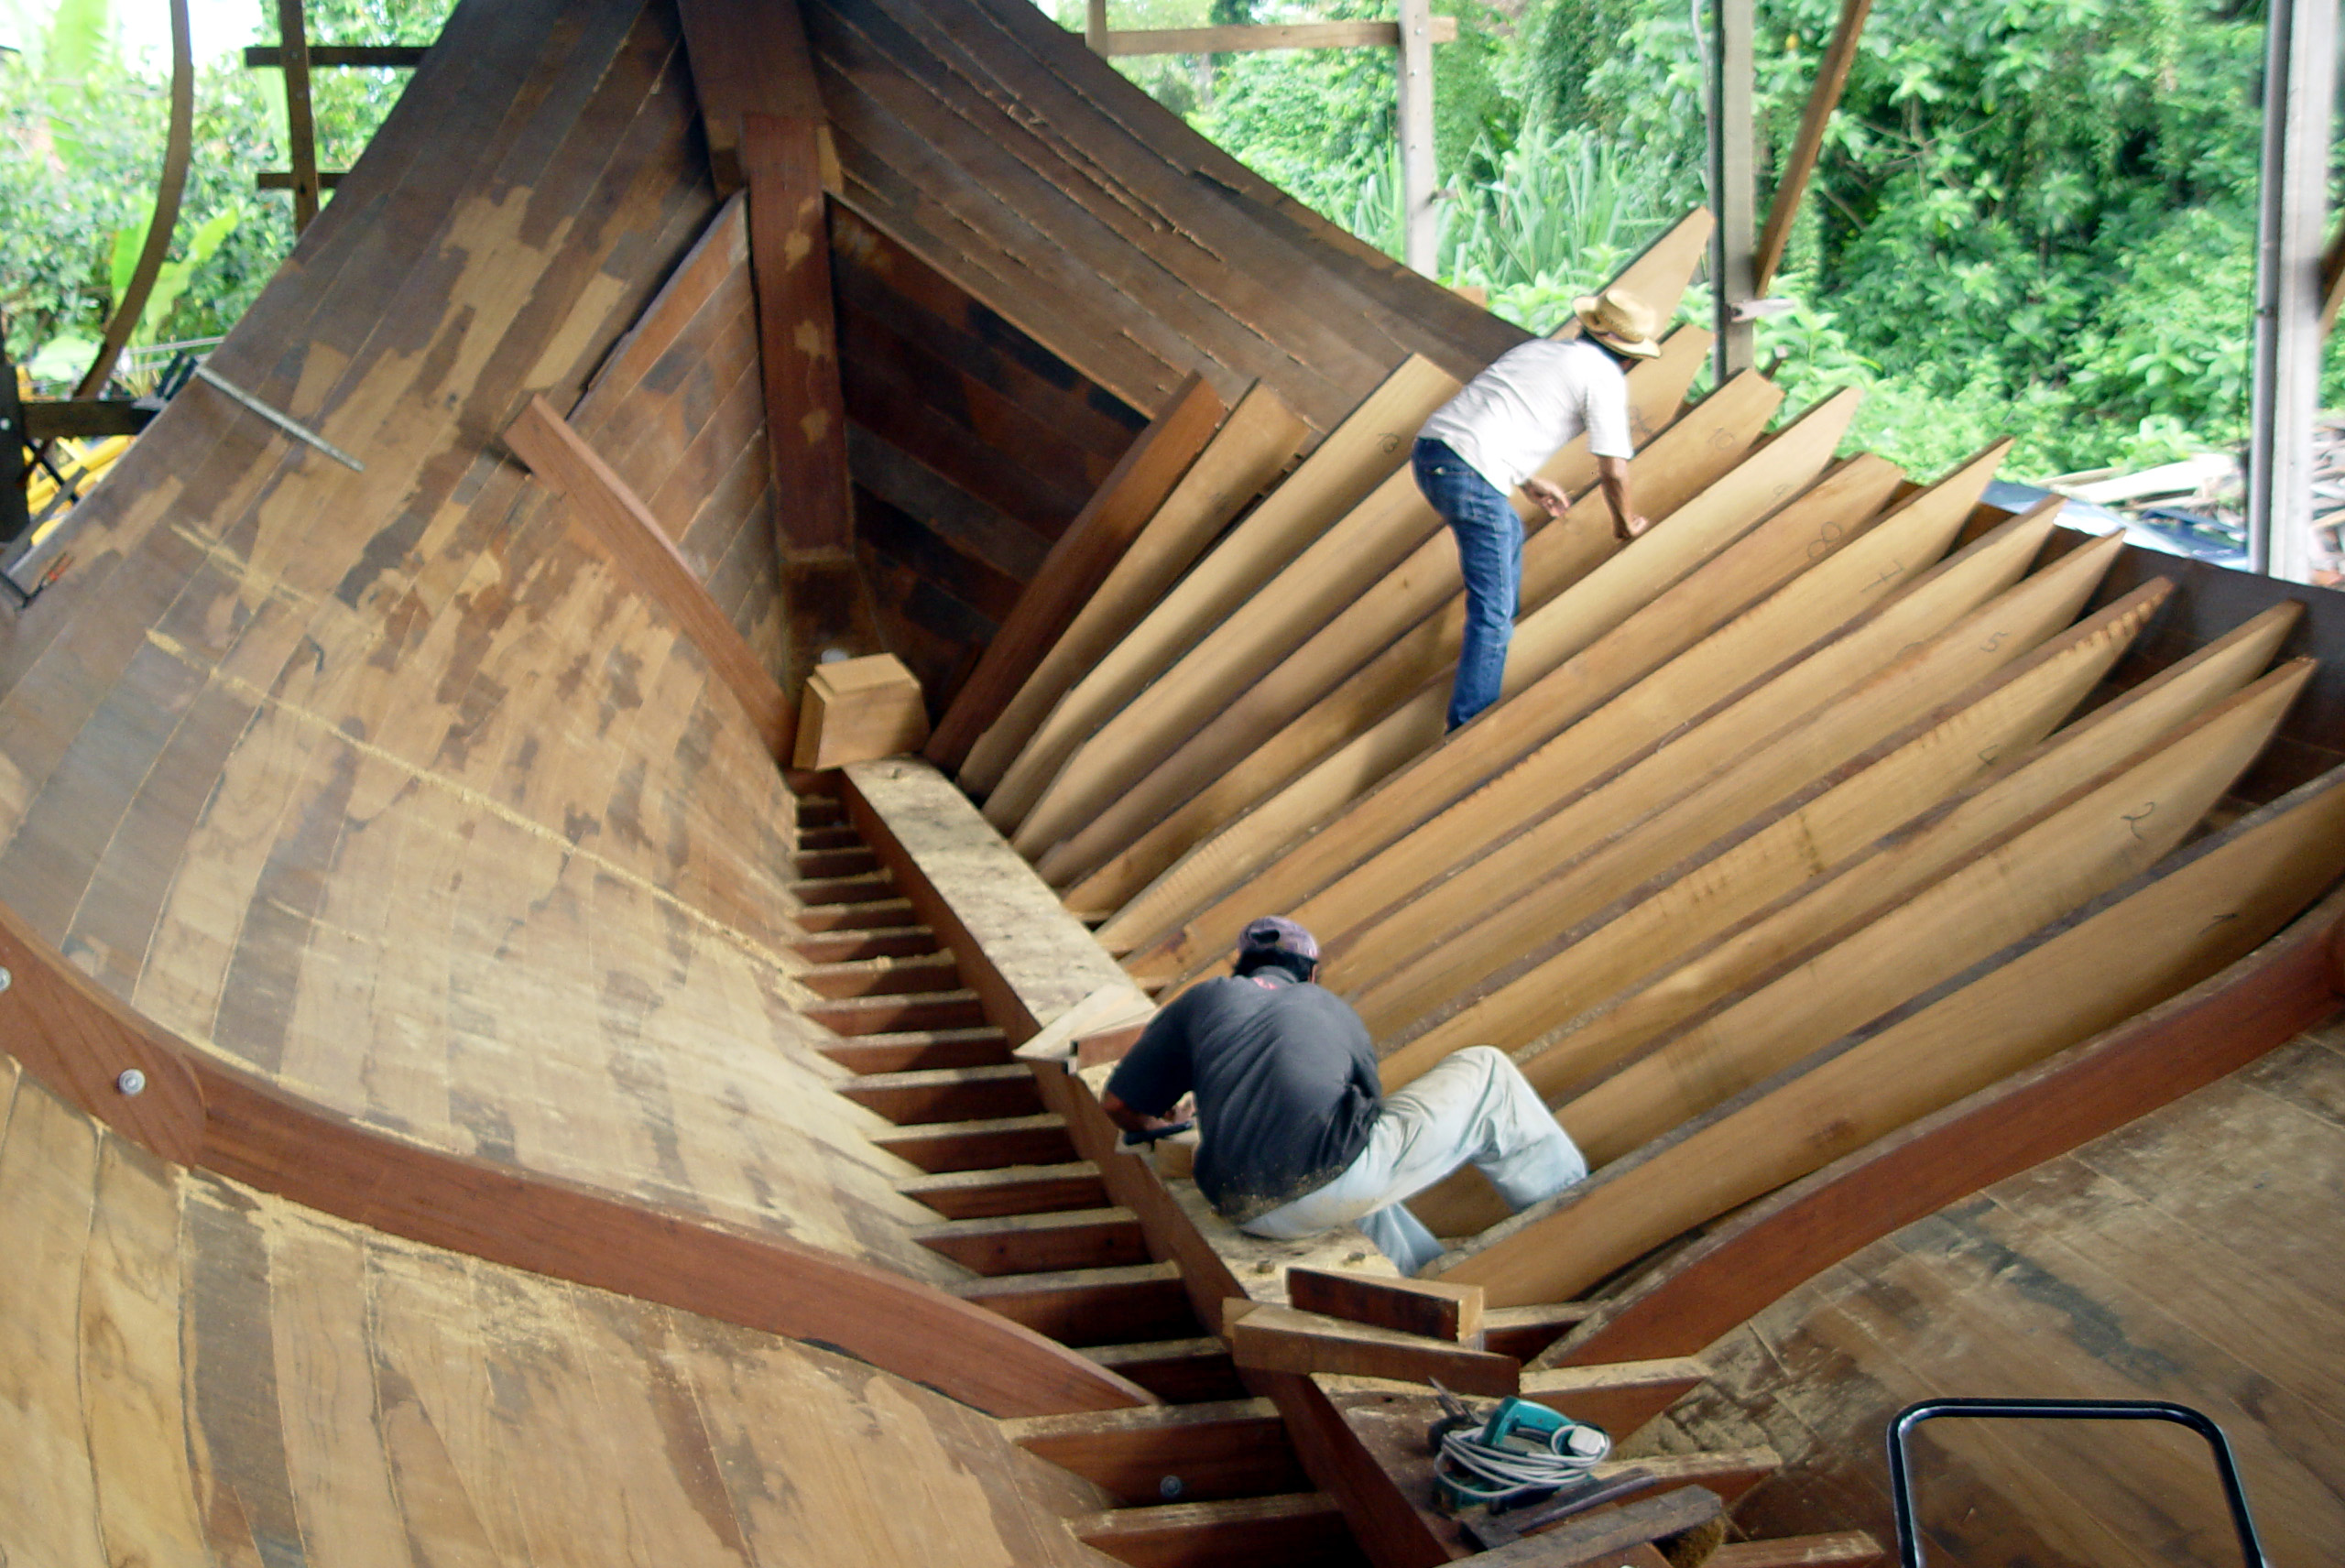 File:Traditional Malay boat building.jpg - Wikimedia Commons